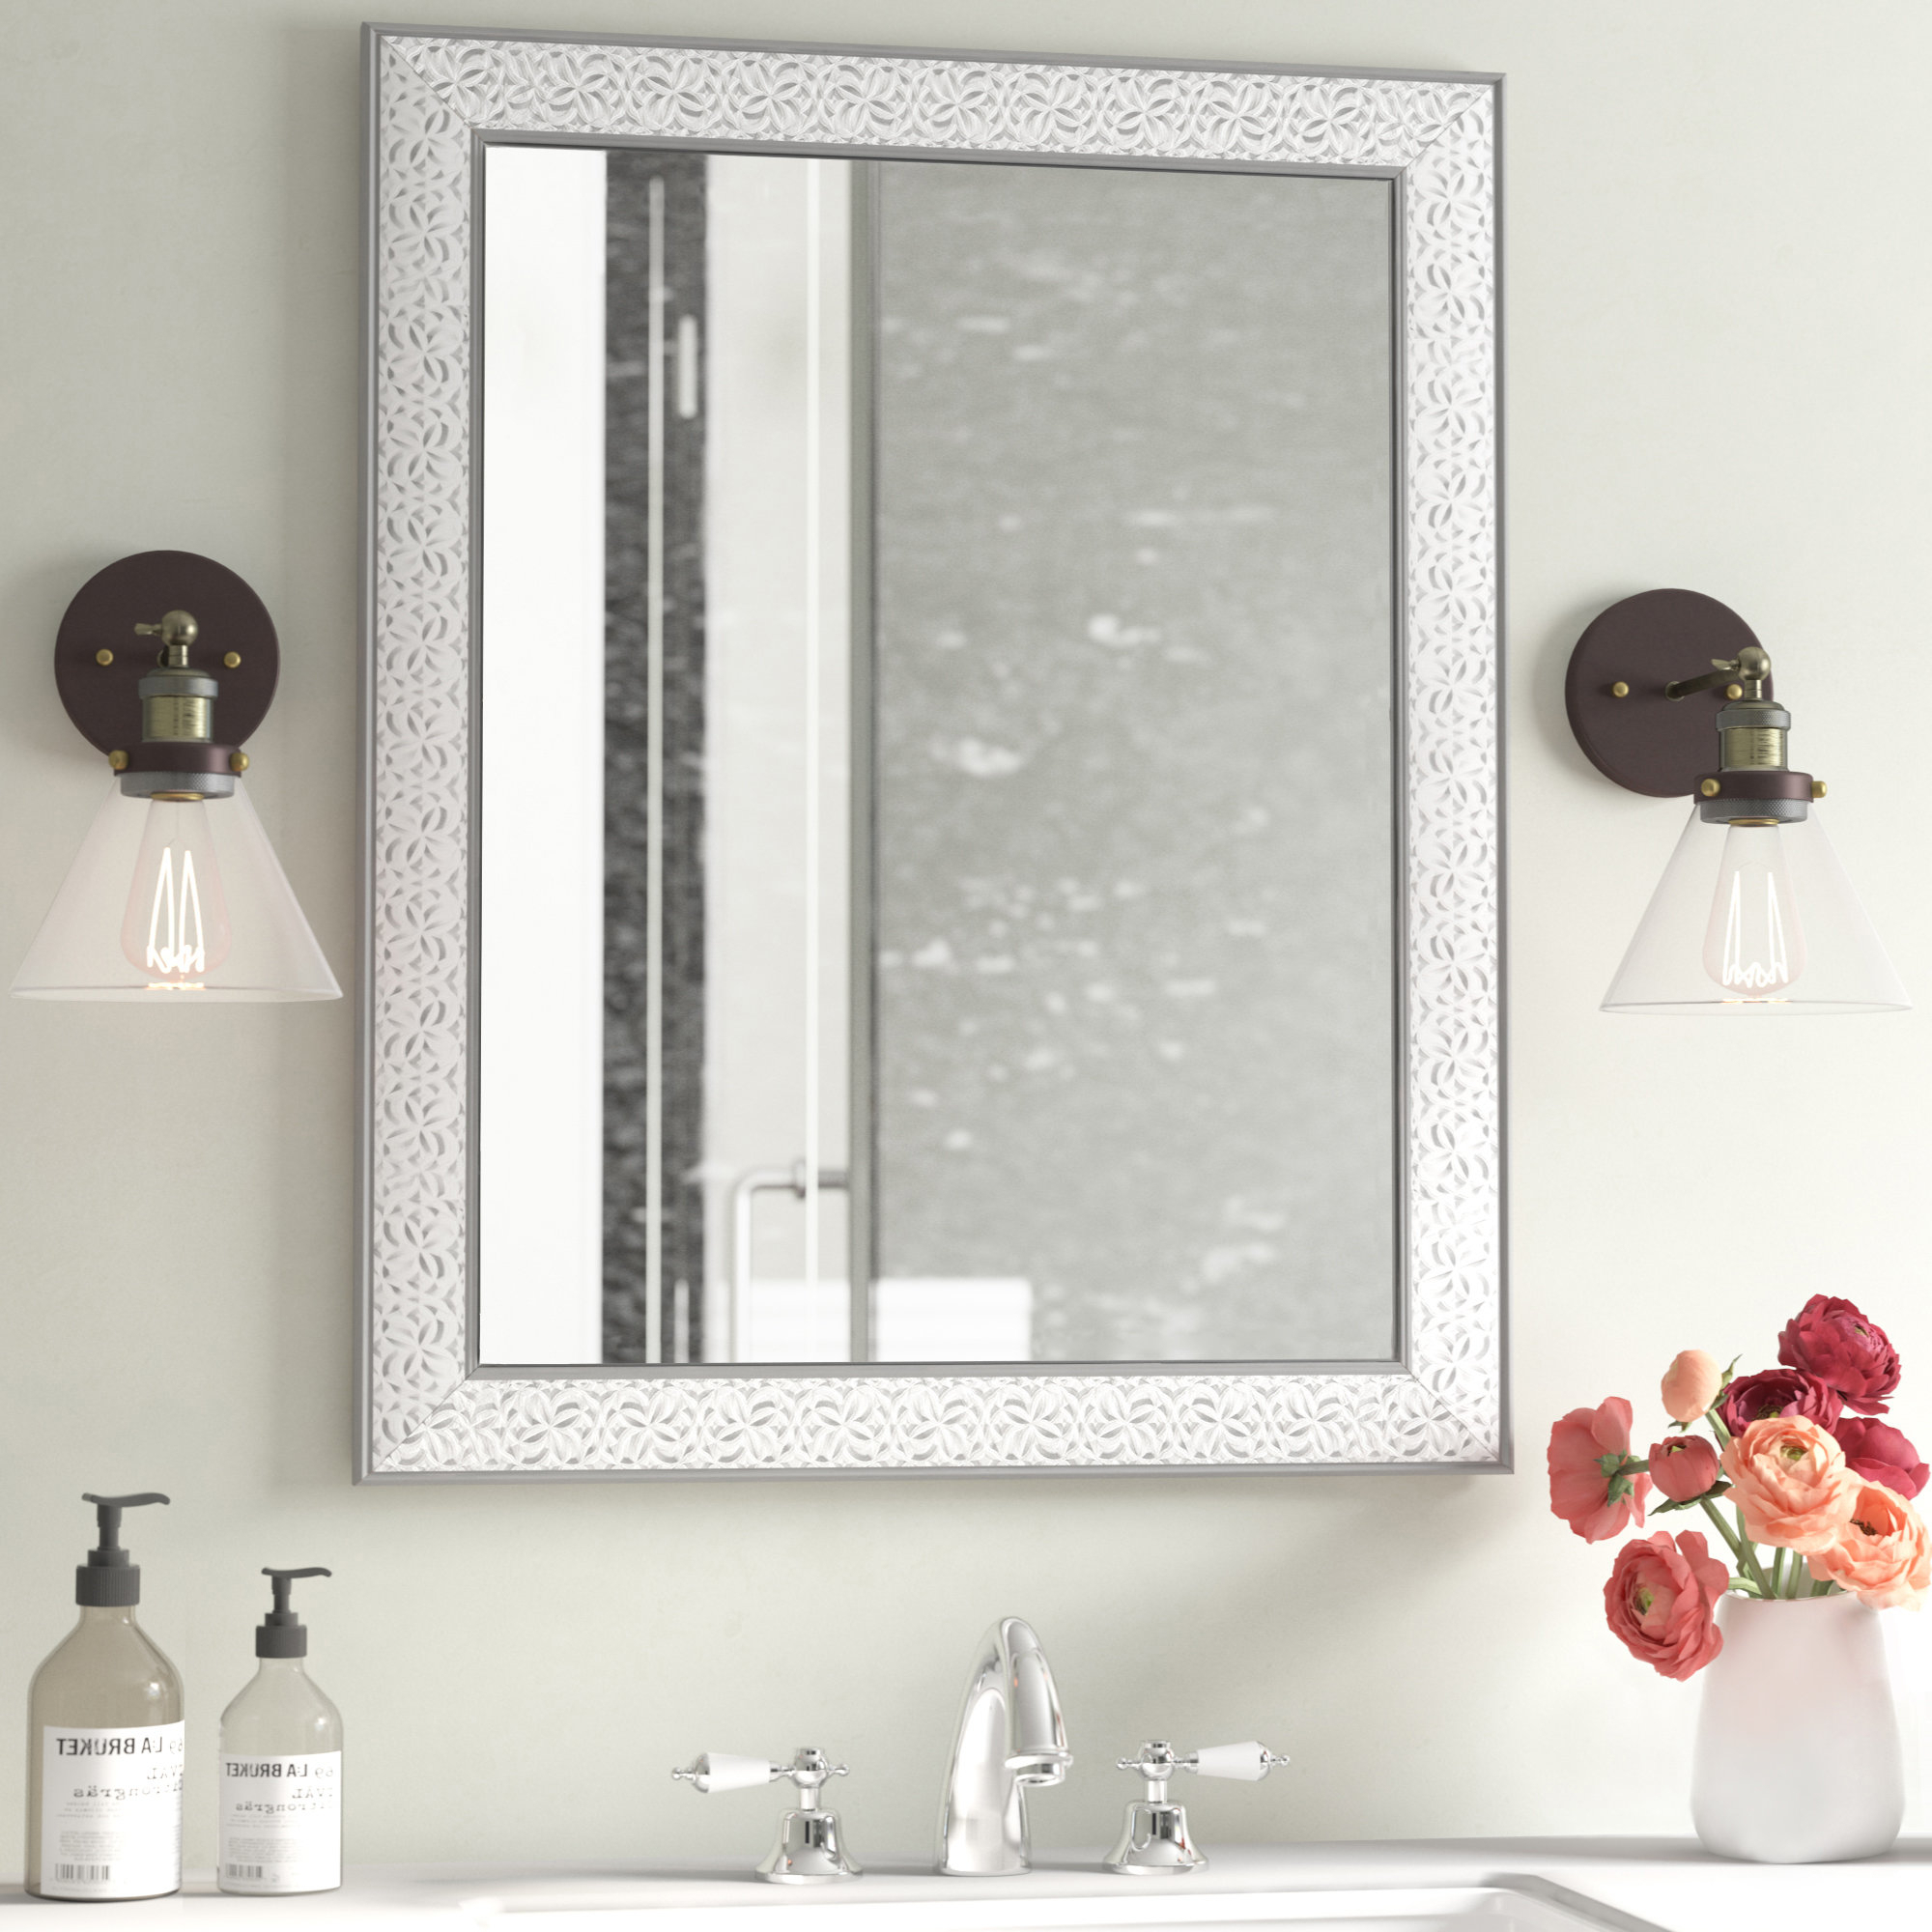 Modern & Contemporary Beveled Wall Mirrors Pertaining To Best And Newest Encanto Modern & Contemporary Beveled Bathroom/vanity Mirror (View 5 of 20)